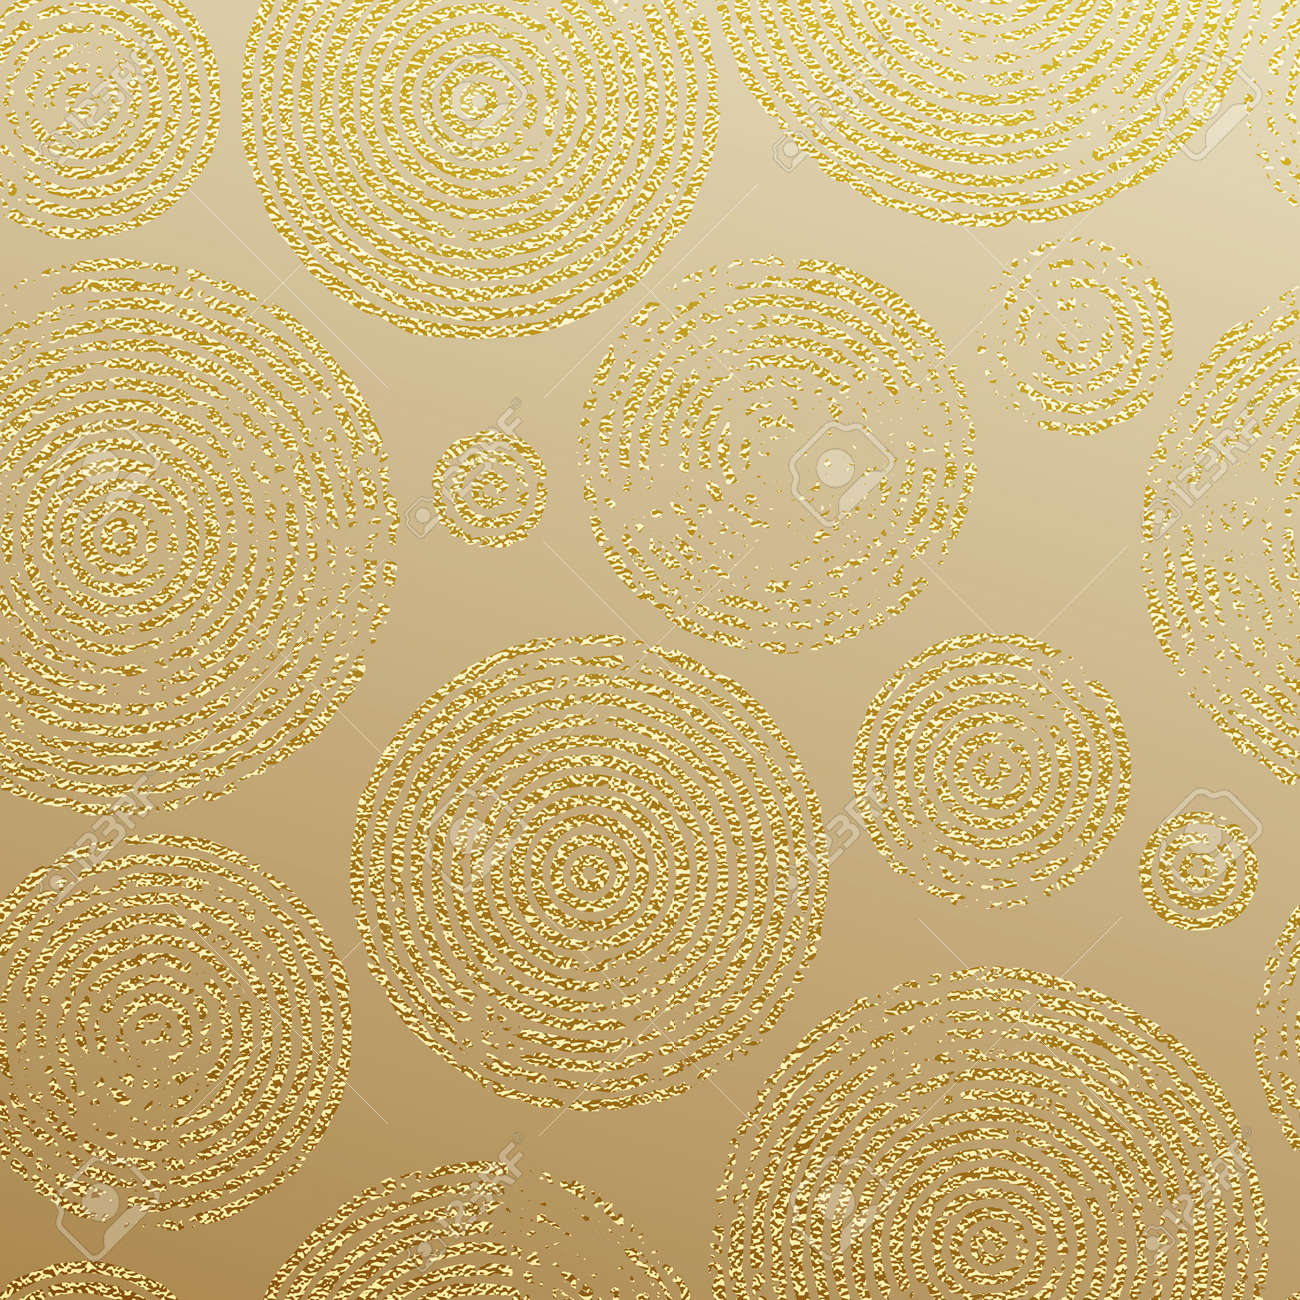 Interior wallpaper texture - Golden Rings With Gold Glitter Texture Seamless Pattern For Luxury Modern Interior Wallpaper Tile